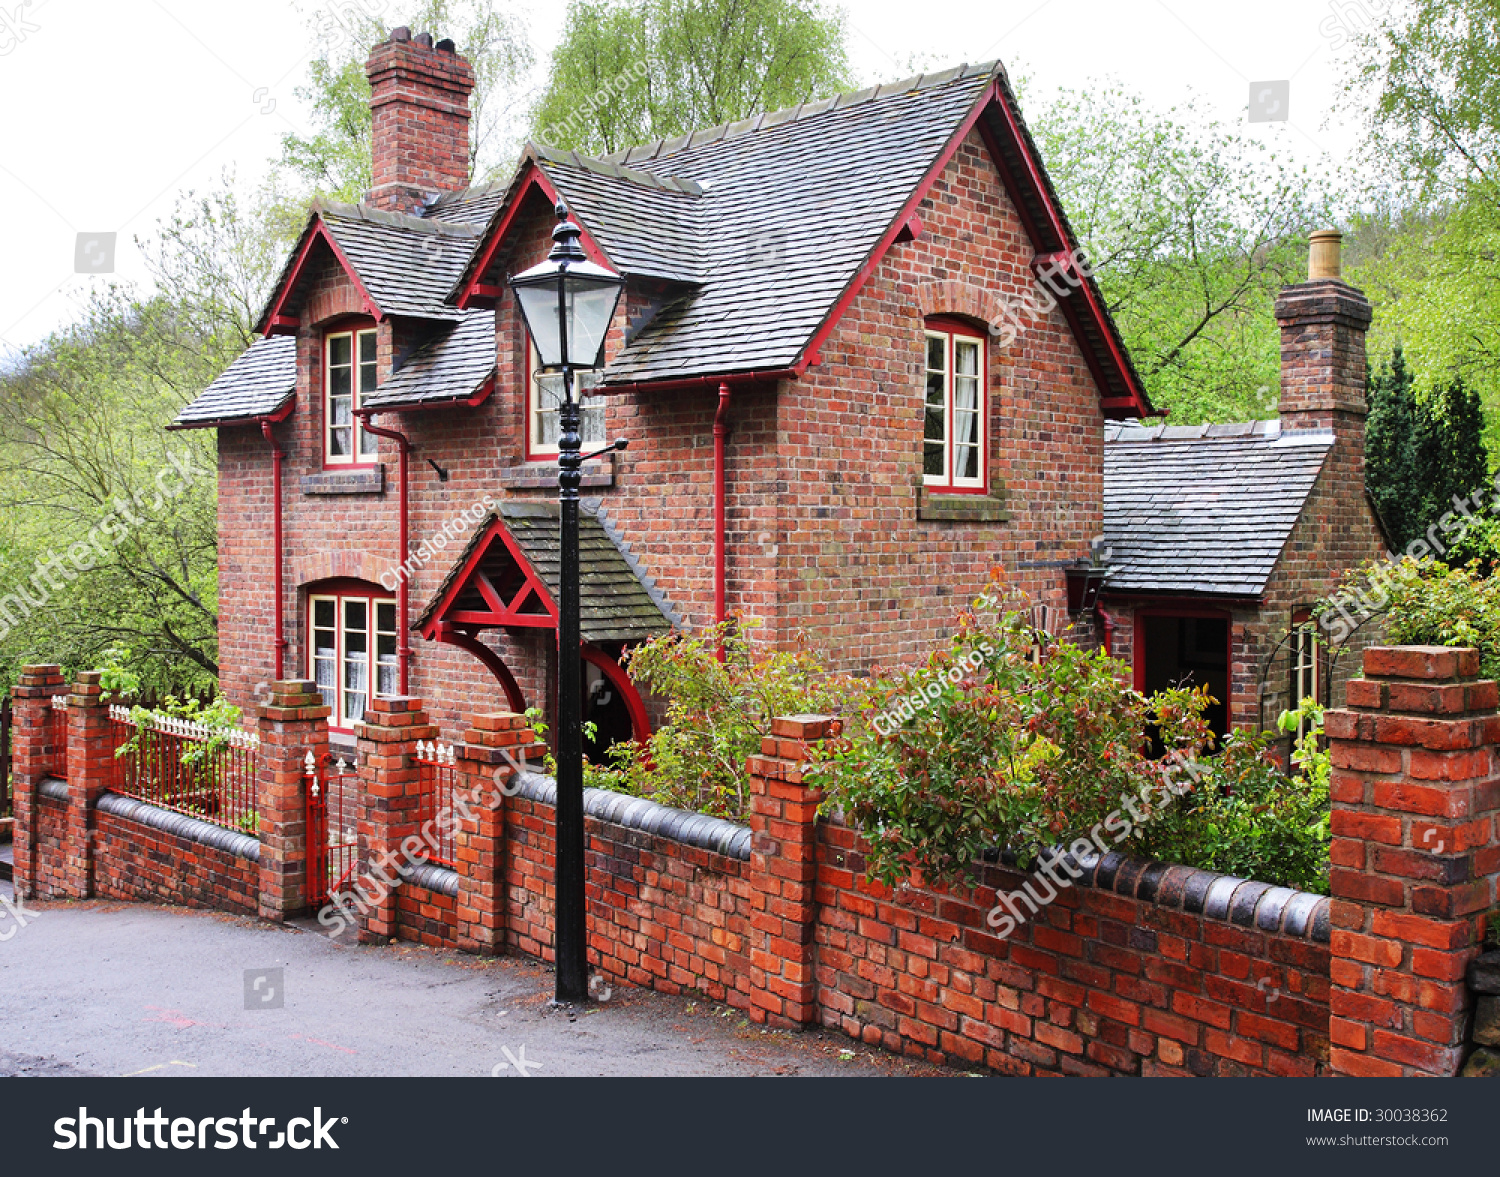 Victorian Red Brick English Village House Stock Photo